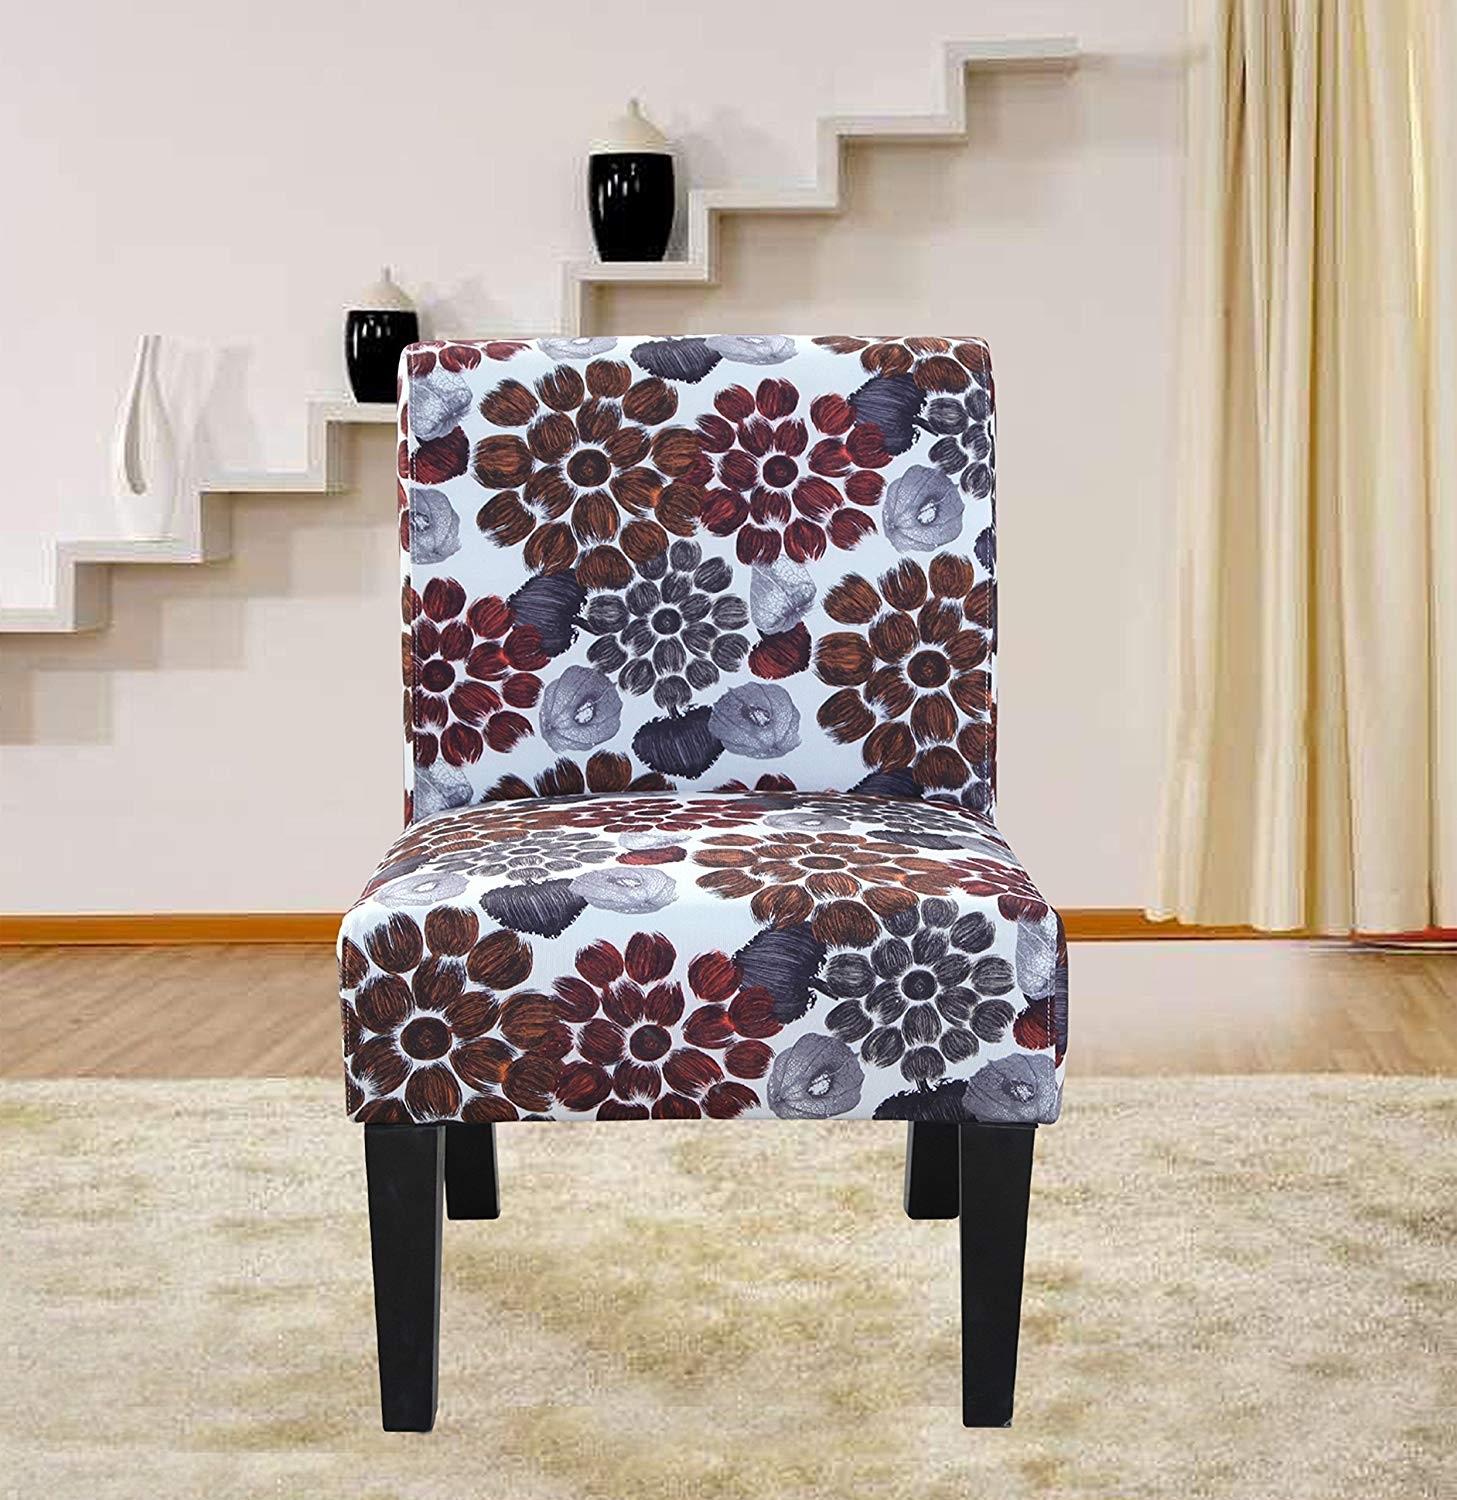 Container Direct Furniture Grace Flower Patterned Fabric Accent Chair, Orange, Regular